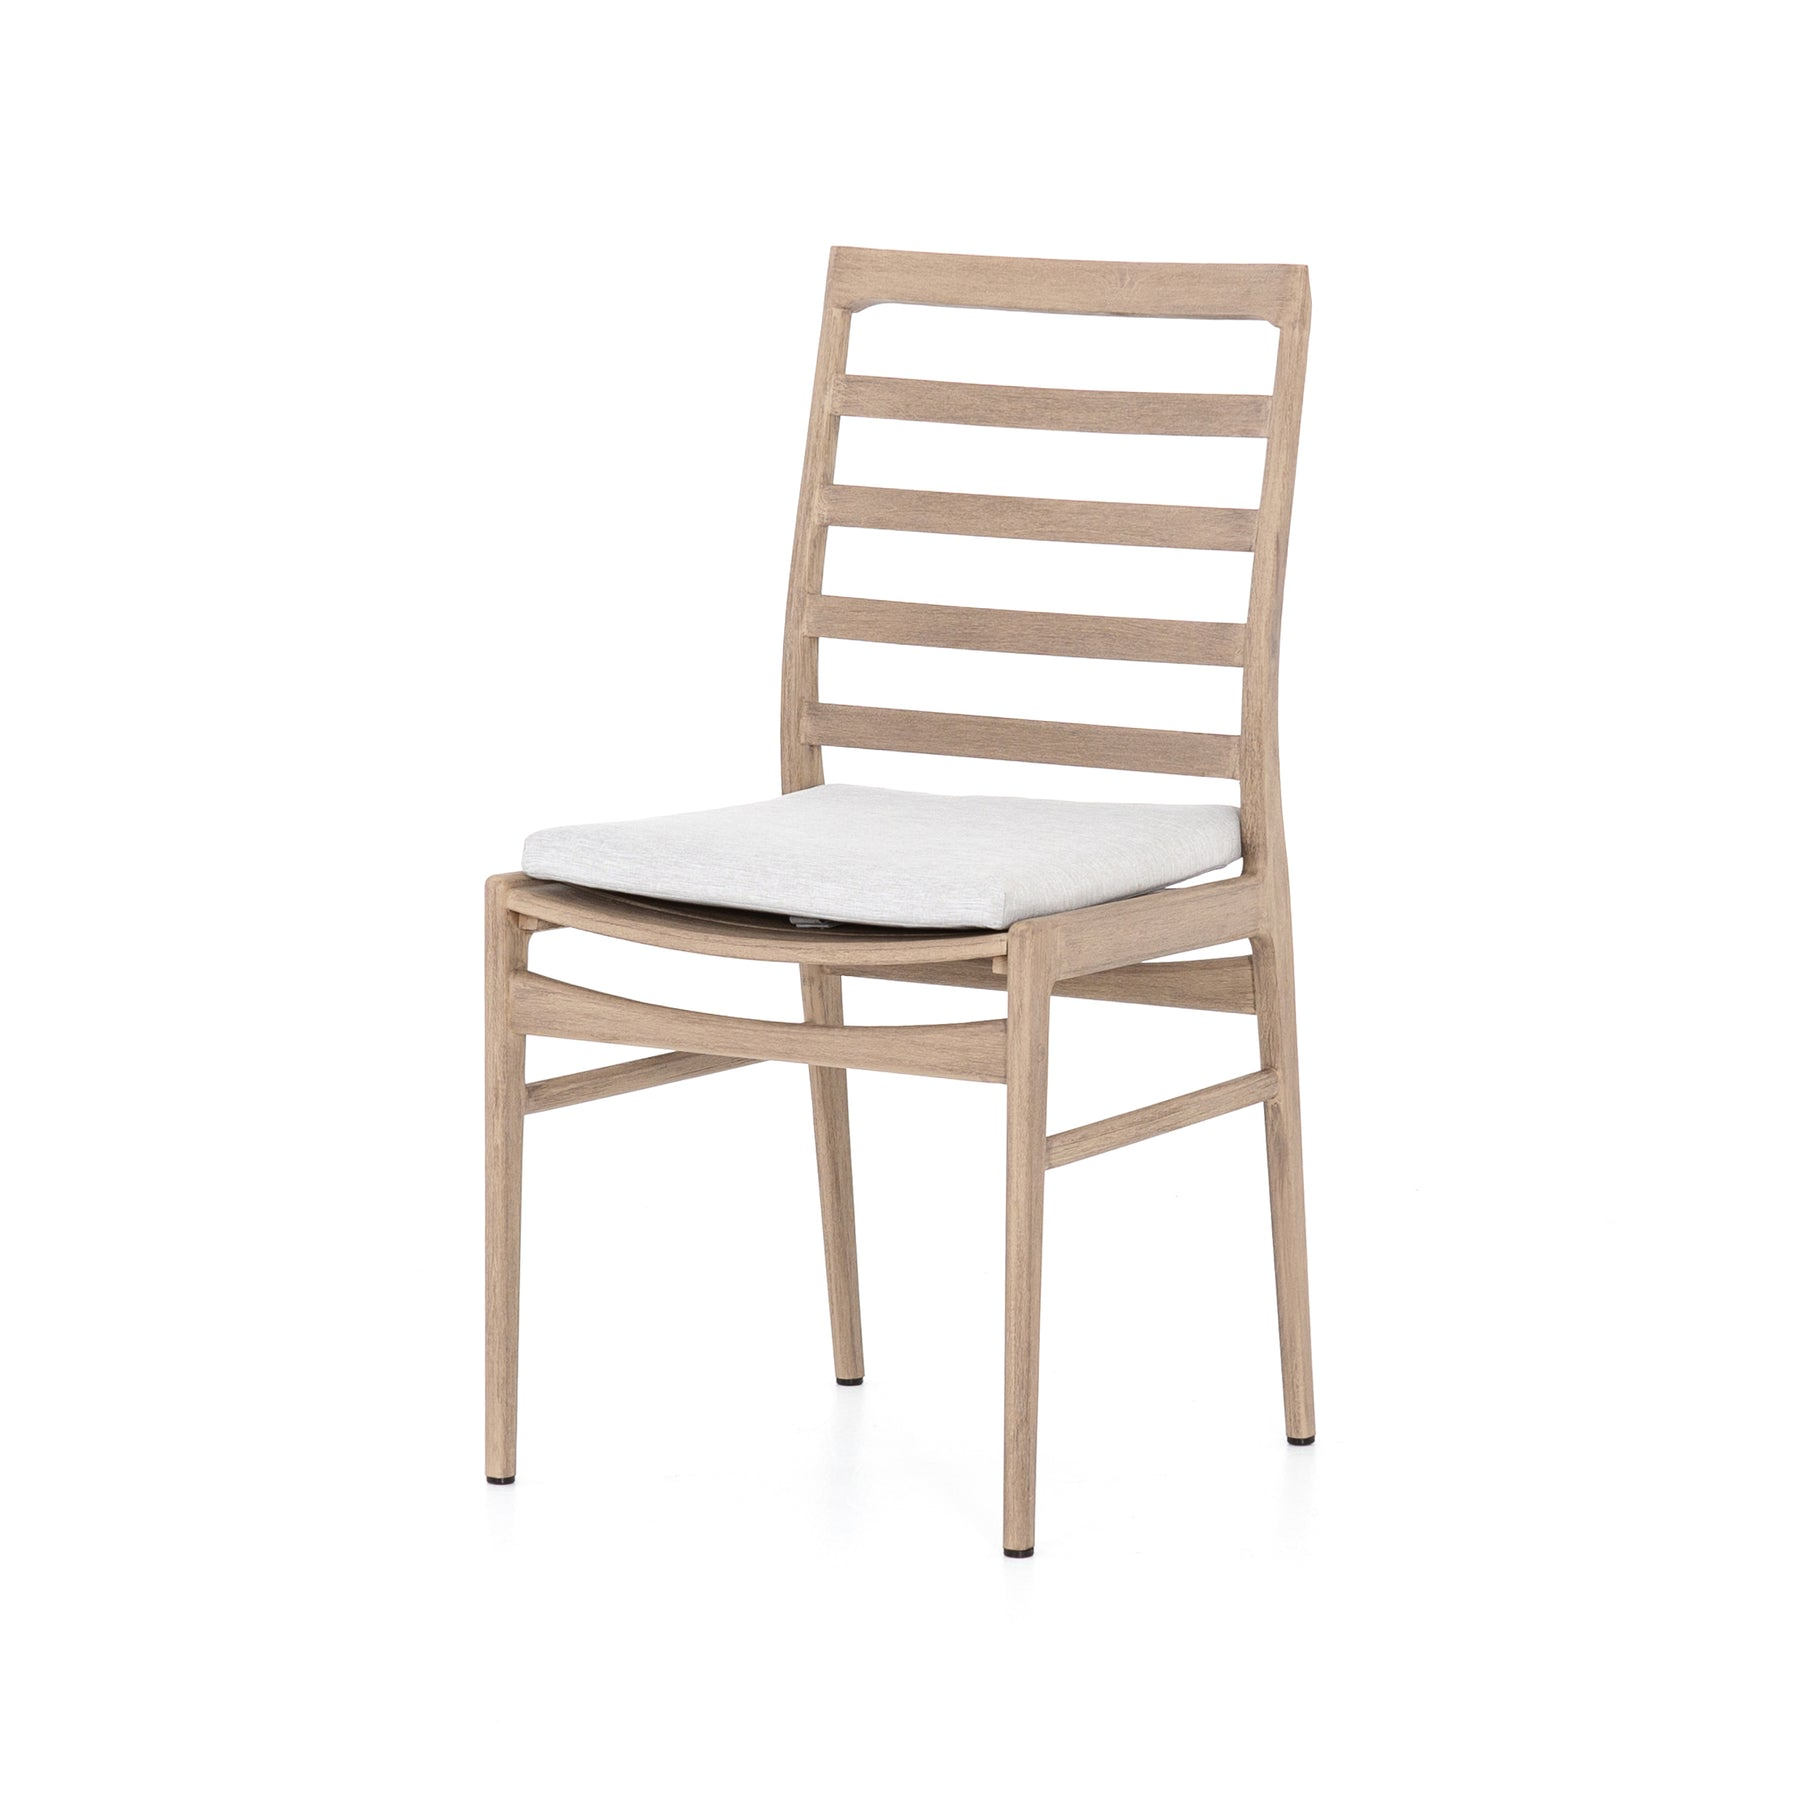 Astonishing Linear Brown Teak Outdoor Dining Chair Bright Modern Furniture Pabps2019 Chair Design Images Pabps2019Com